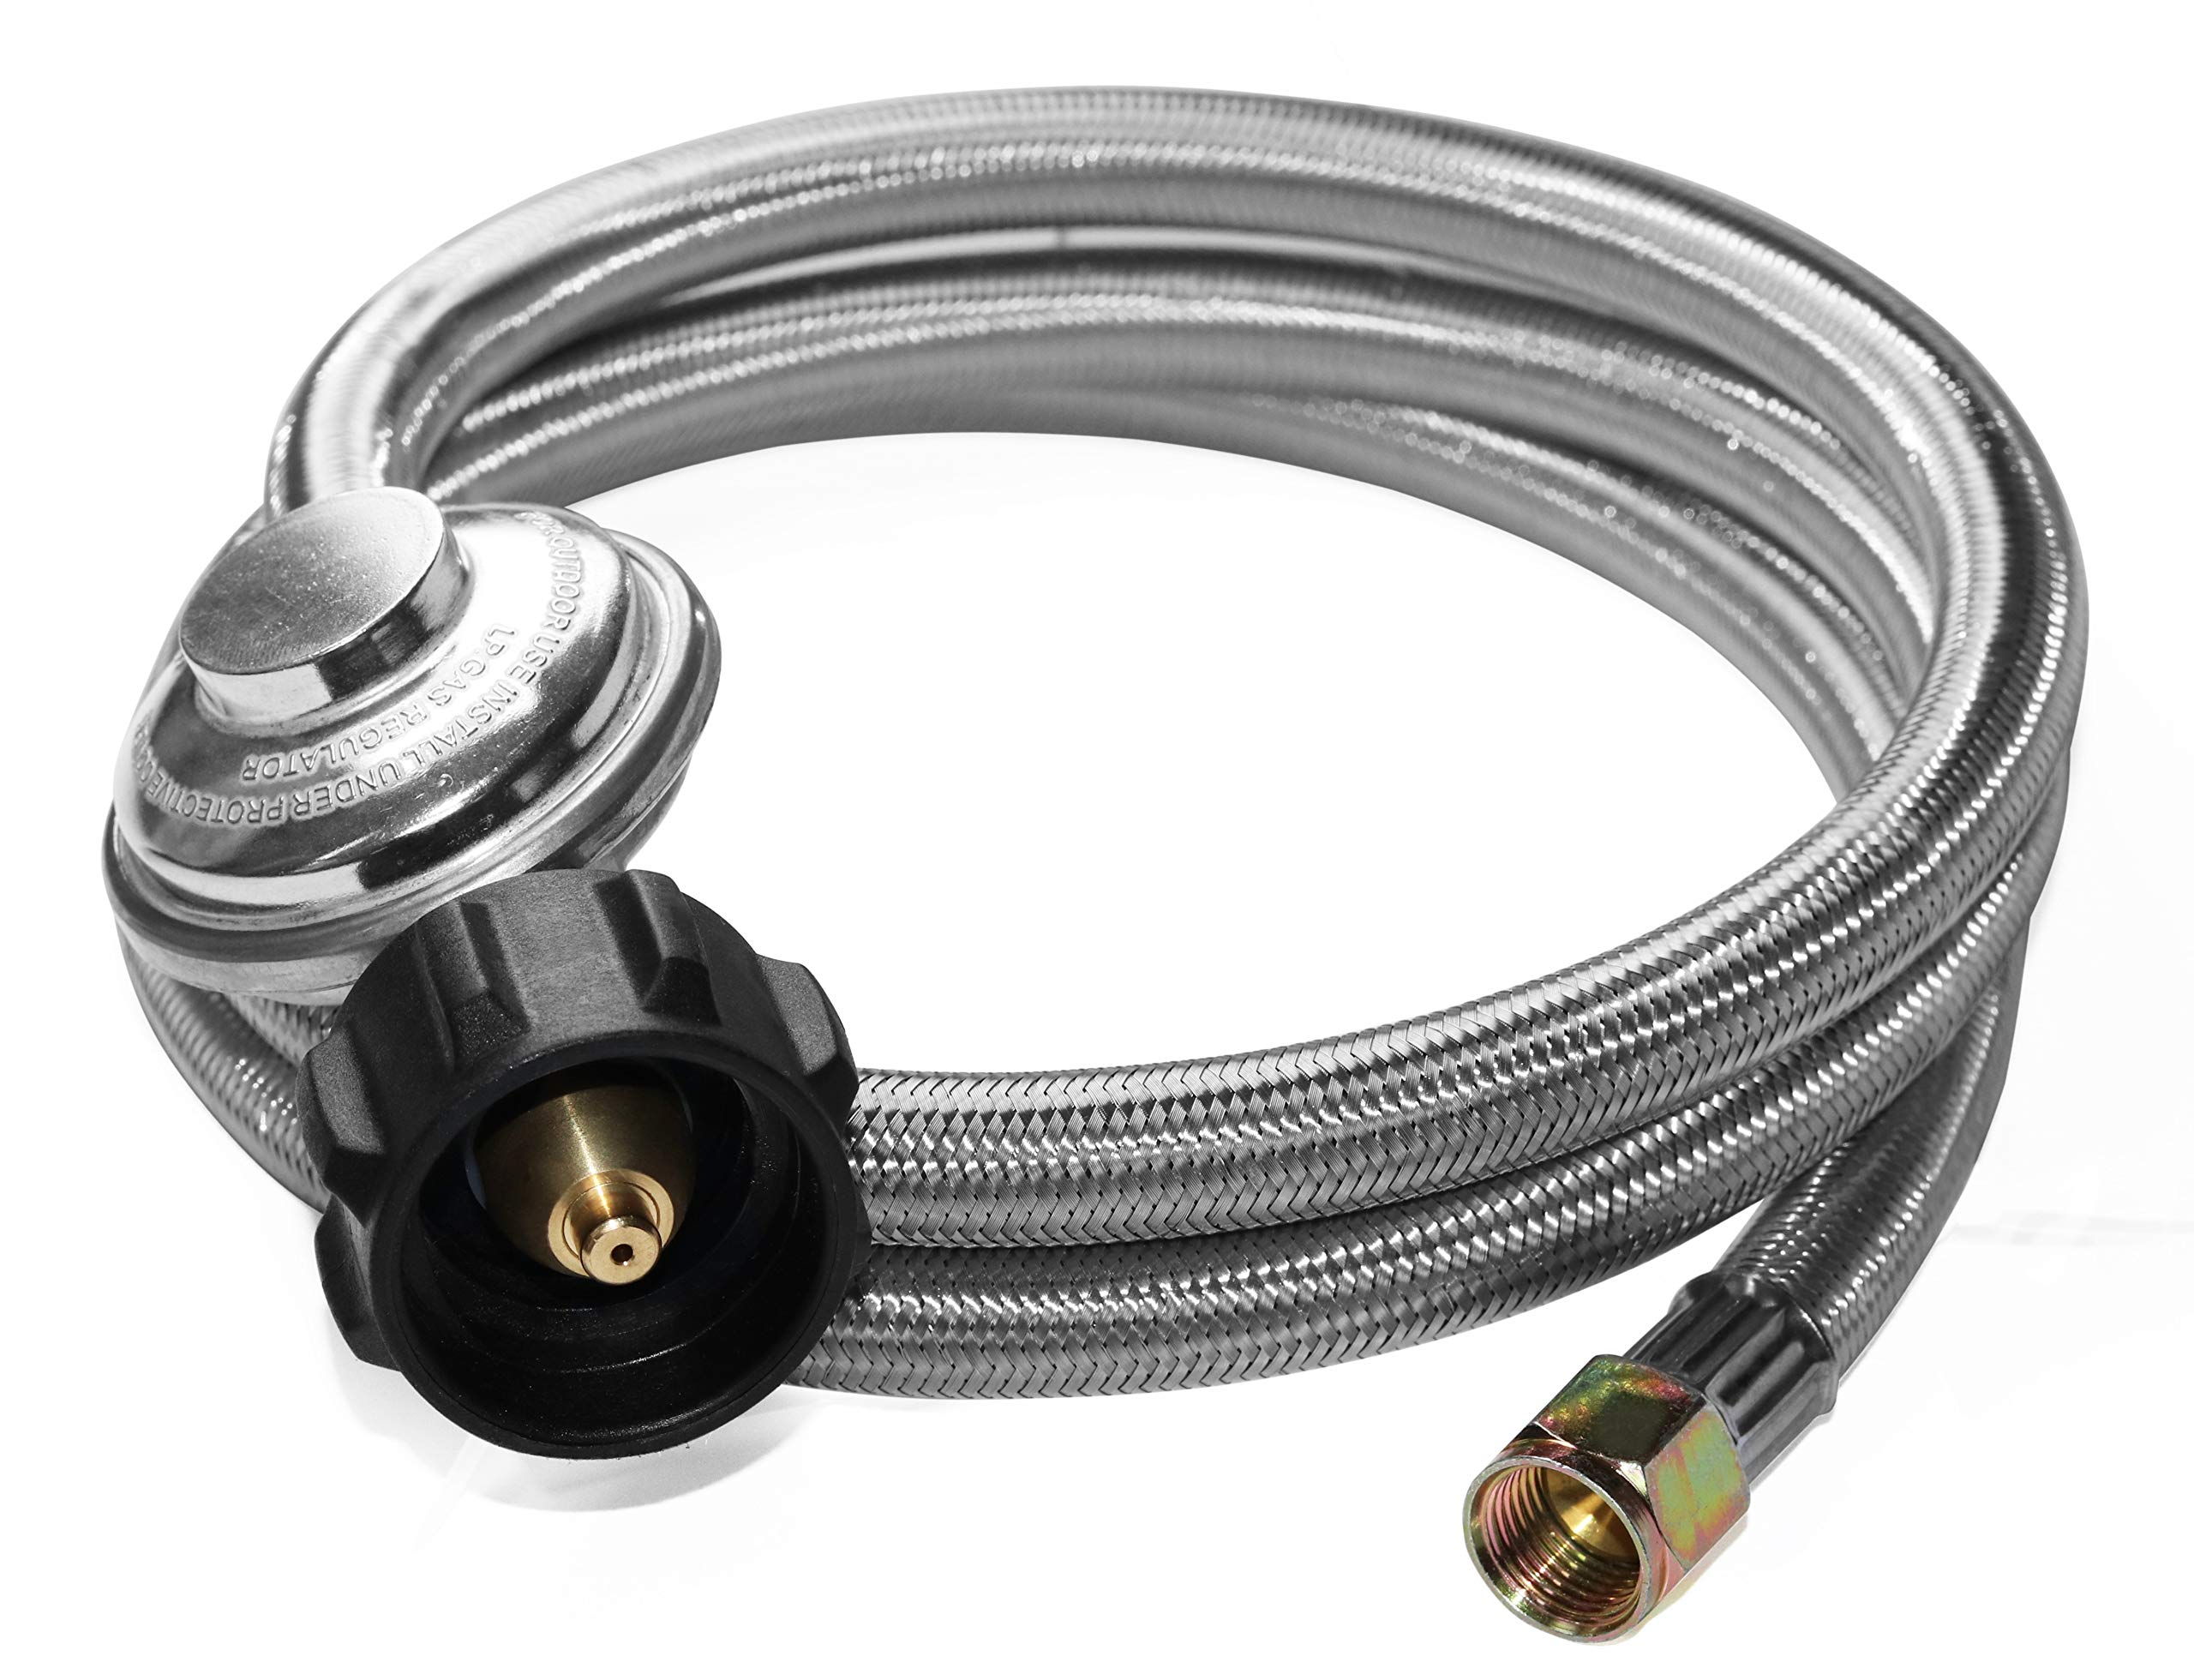 DOZYANT 5 Feet Universal QCC1 Low Pressure Propane Regulator Replacement with Stainless Steel Braided Hose for Most LP Gas Grill, Heater and Fire Pit Table, 3/8'' Female Flare Nut, SS by DOZYANT